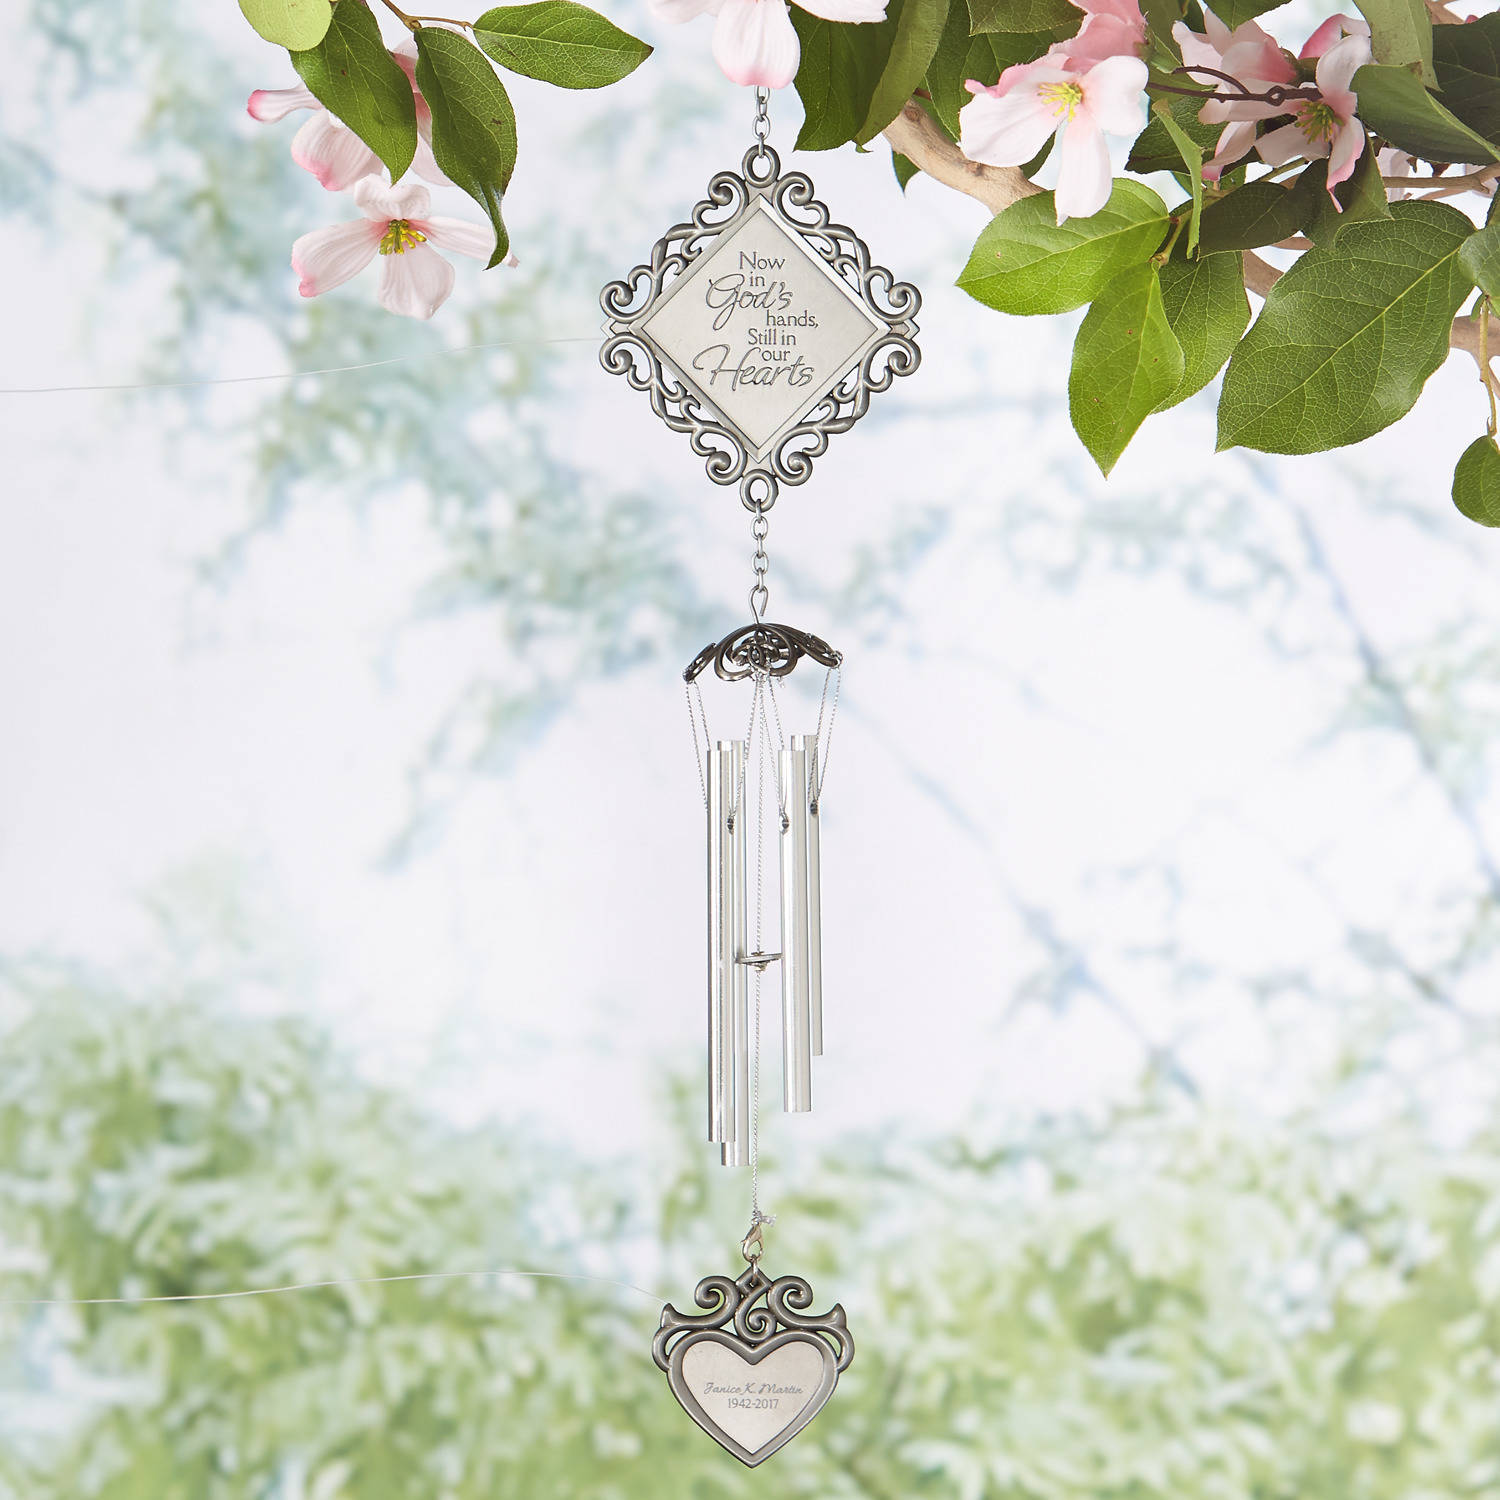 Personalized In God's Hands Memorial Windchime